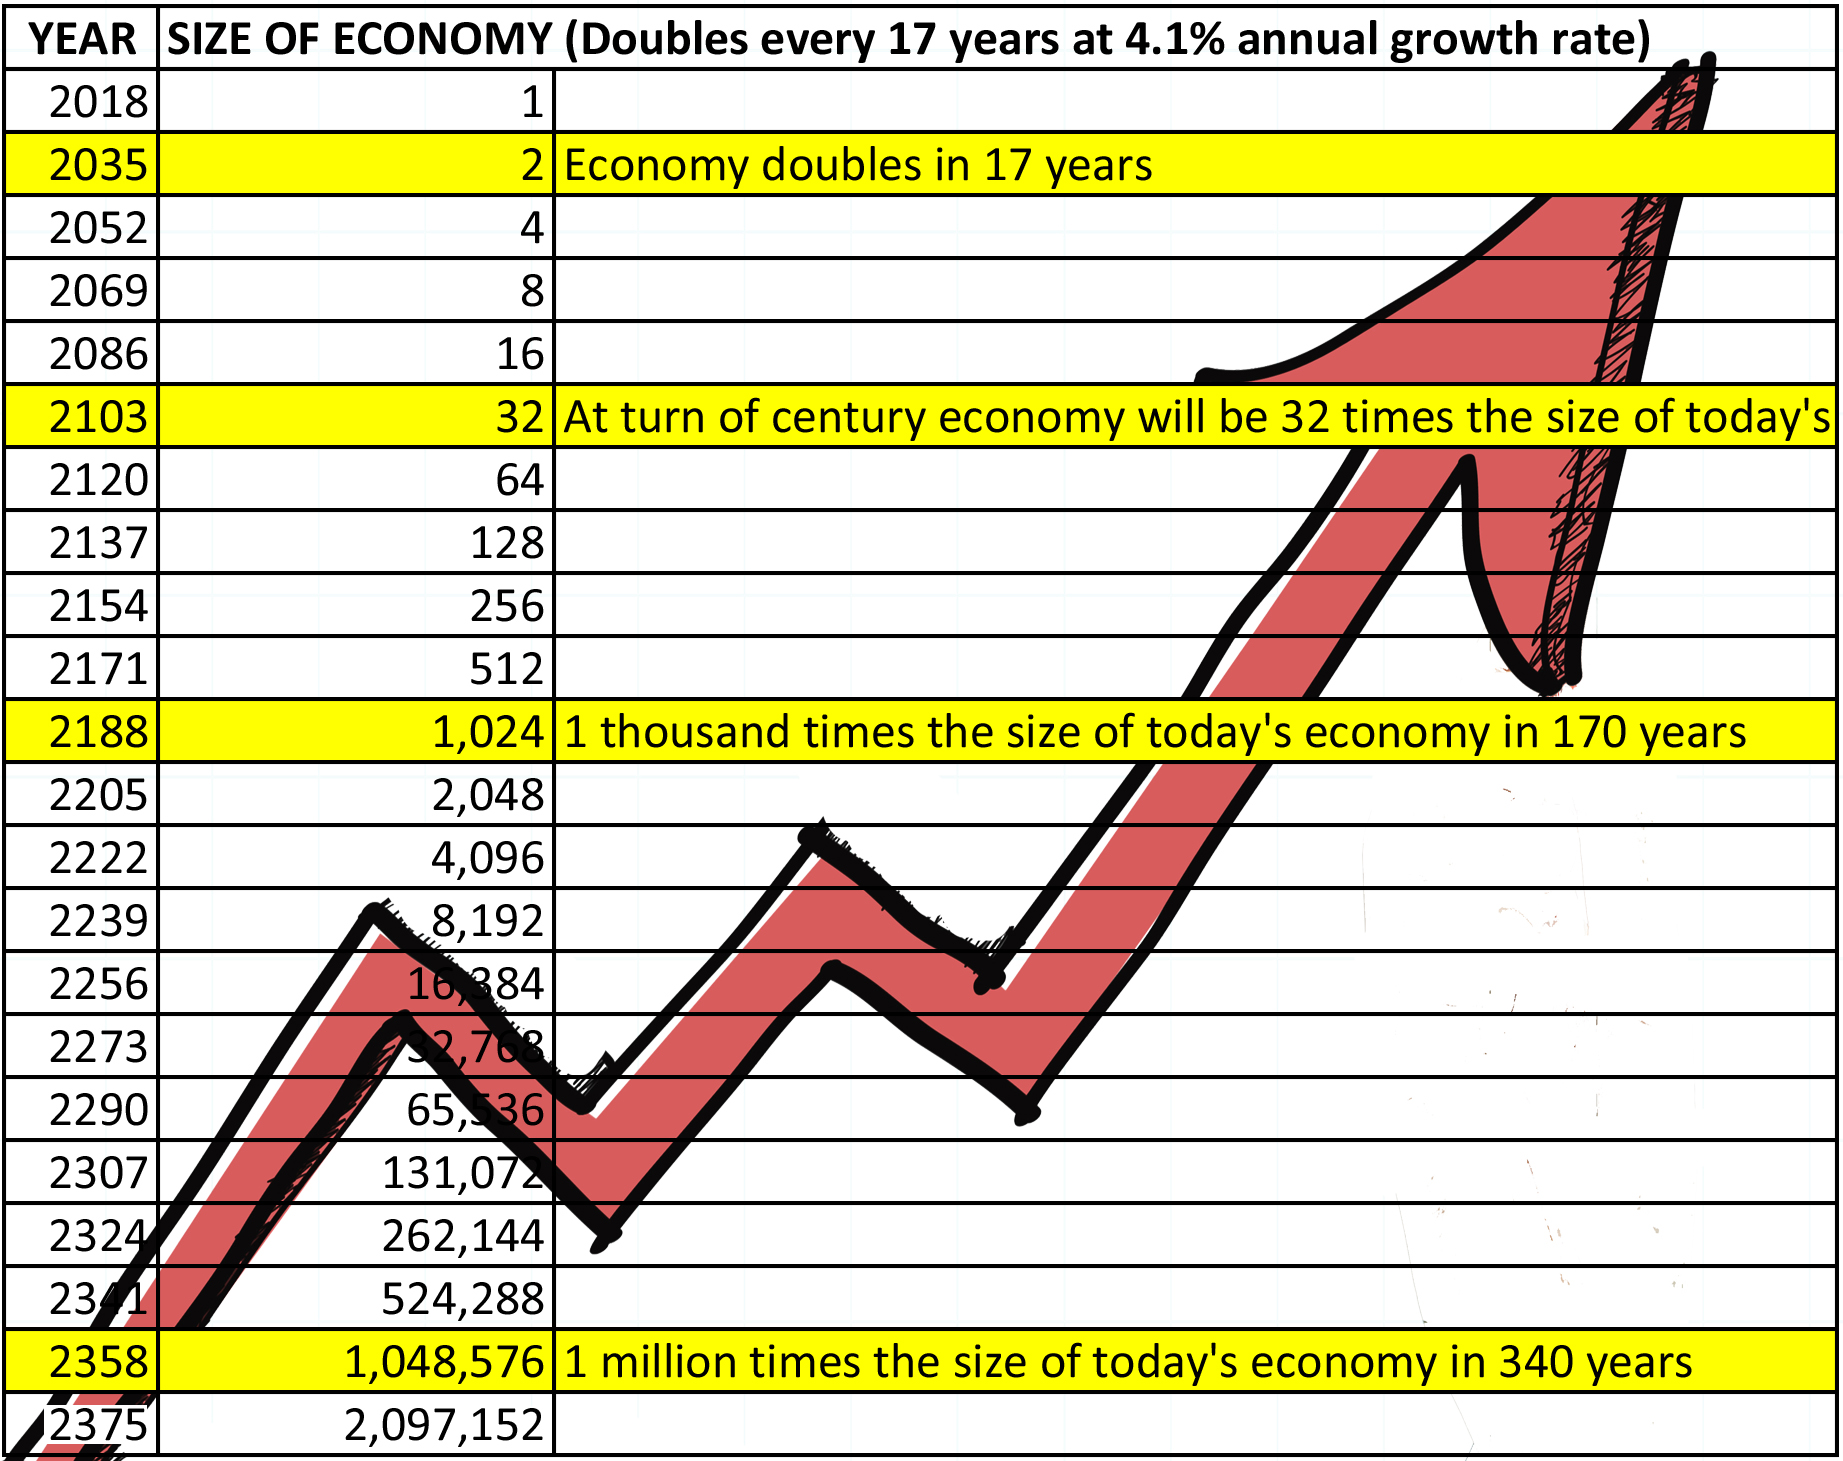 Spreadsheet showing 4.1% annual GDP growth